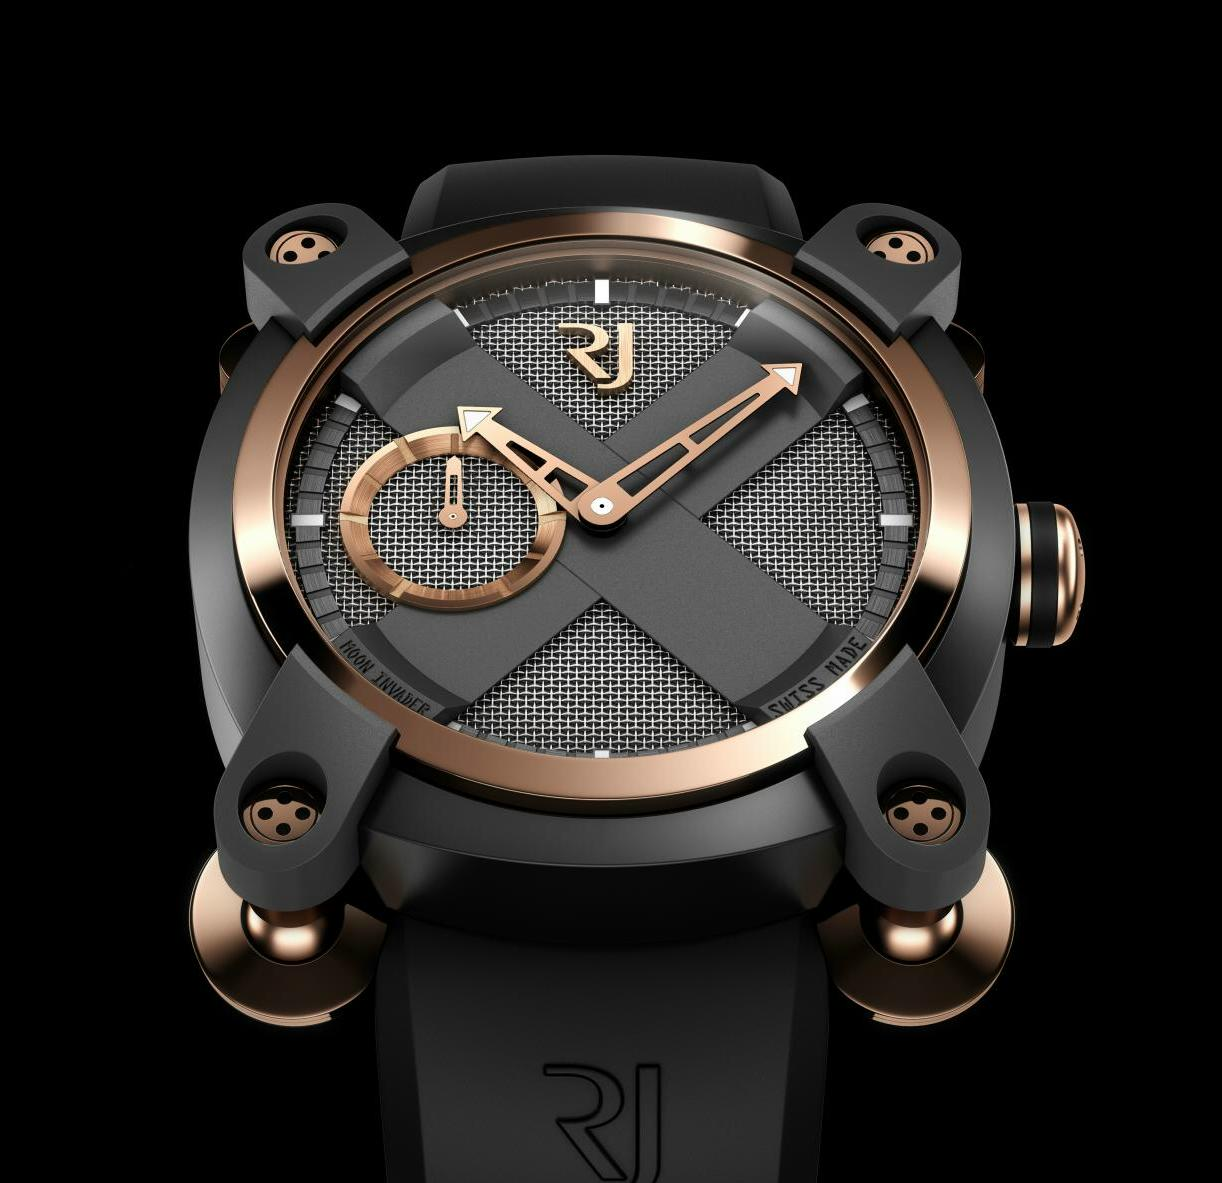 Romain Jerome Moon Invader Eminence Grise Automatic 61c1b95774